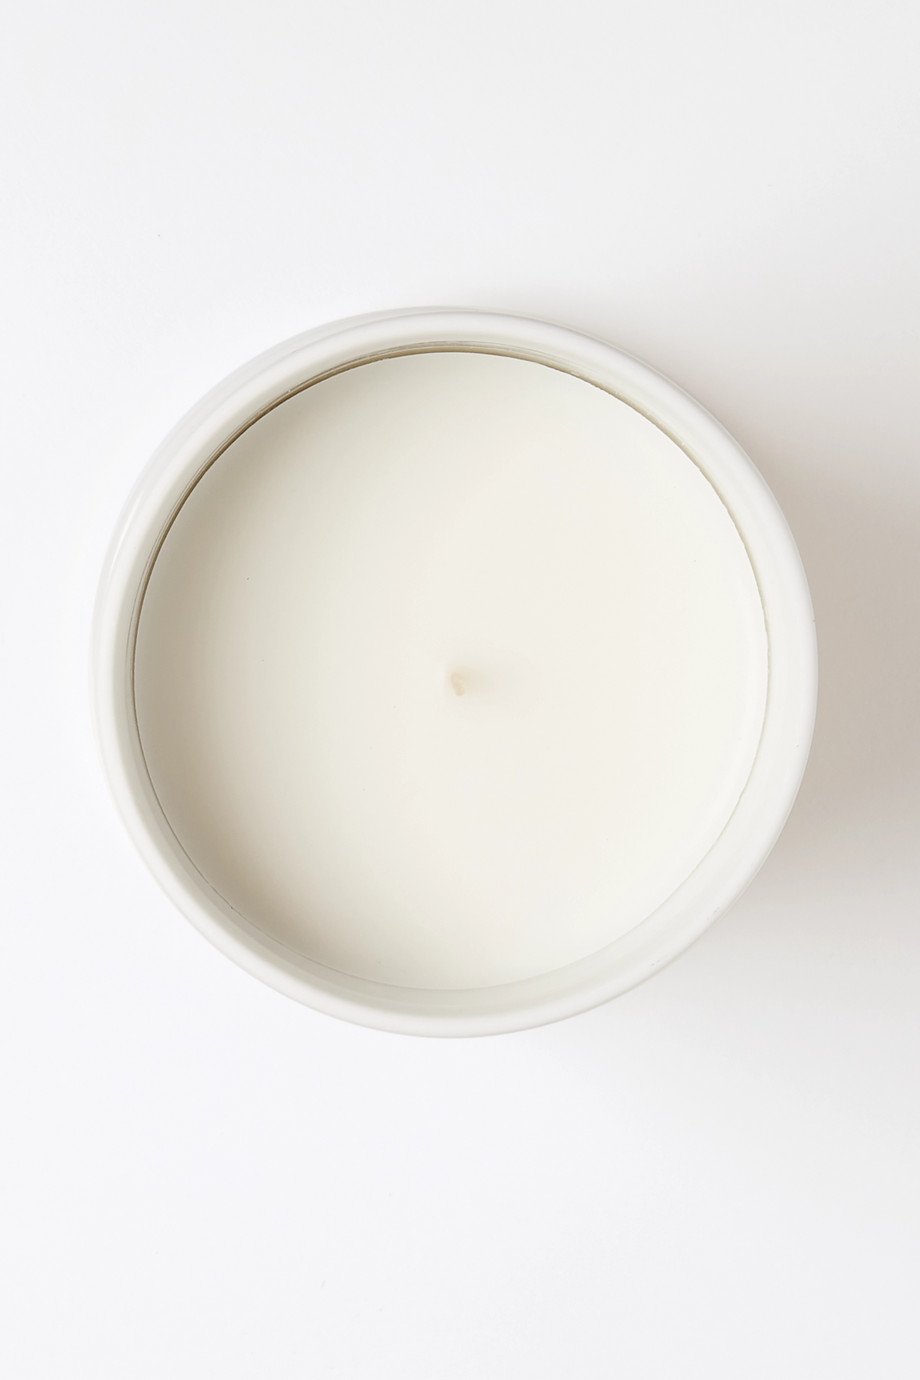 Gucci Beauty The Virgin Violet candle, 540g